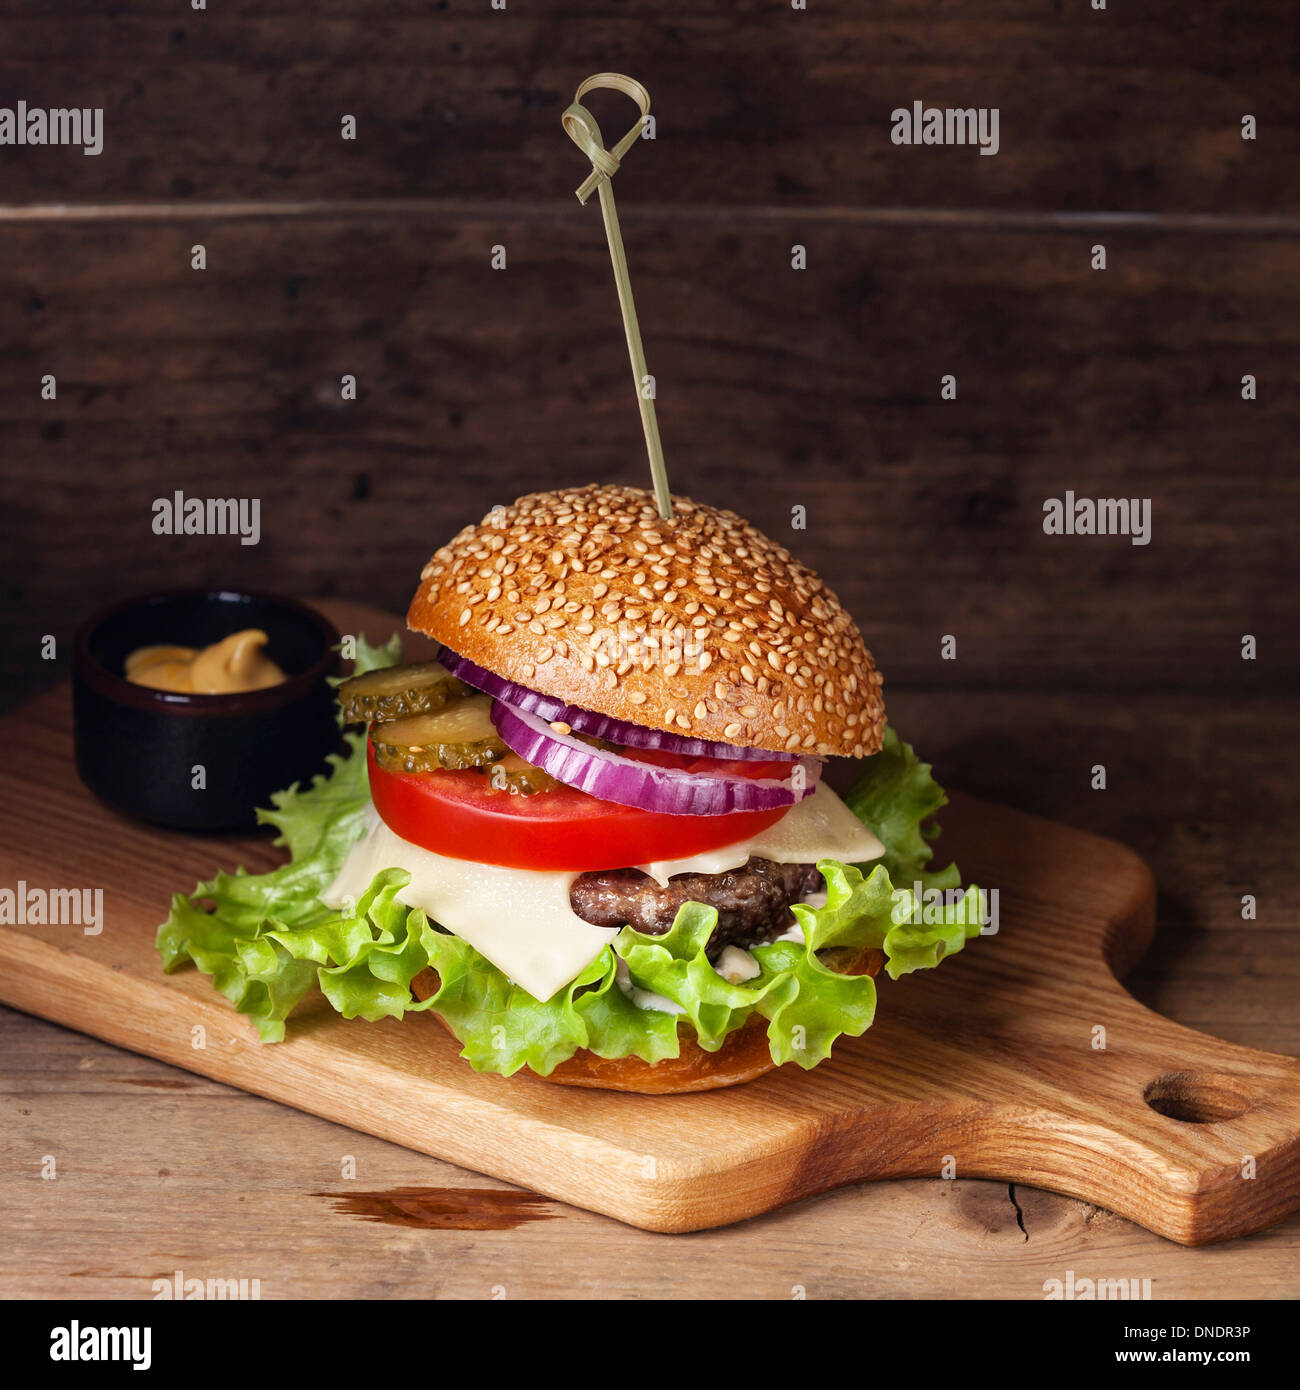 Burger with meat and greens wooden background - Stock Image